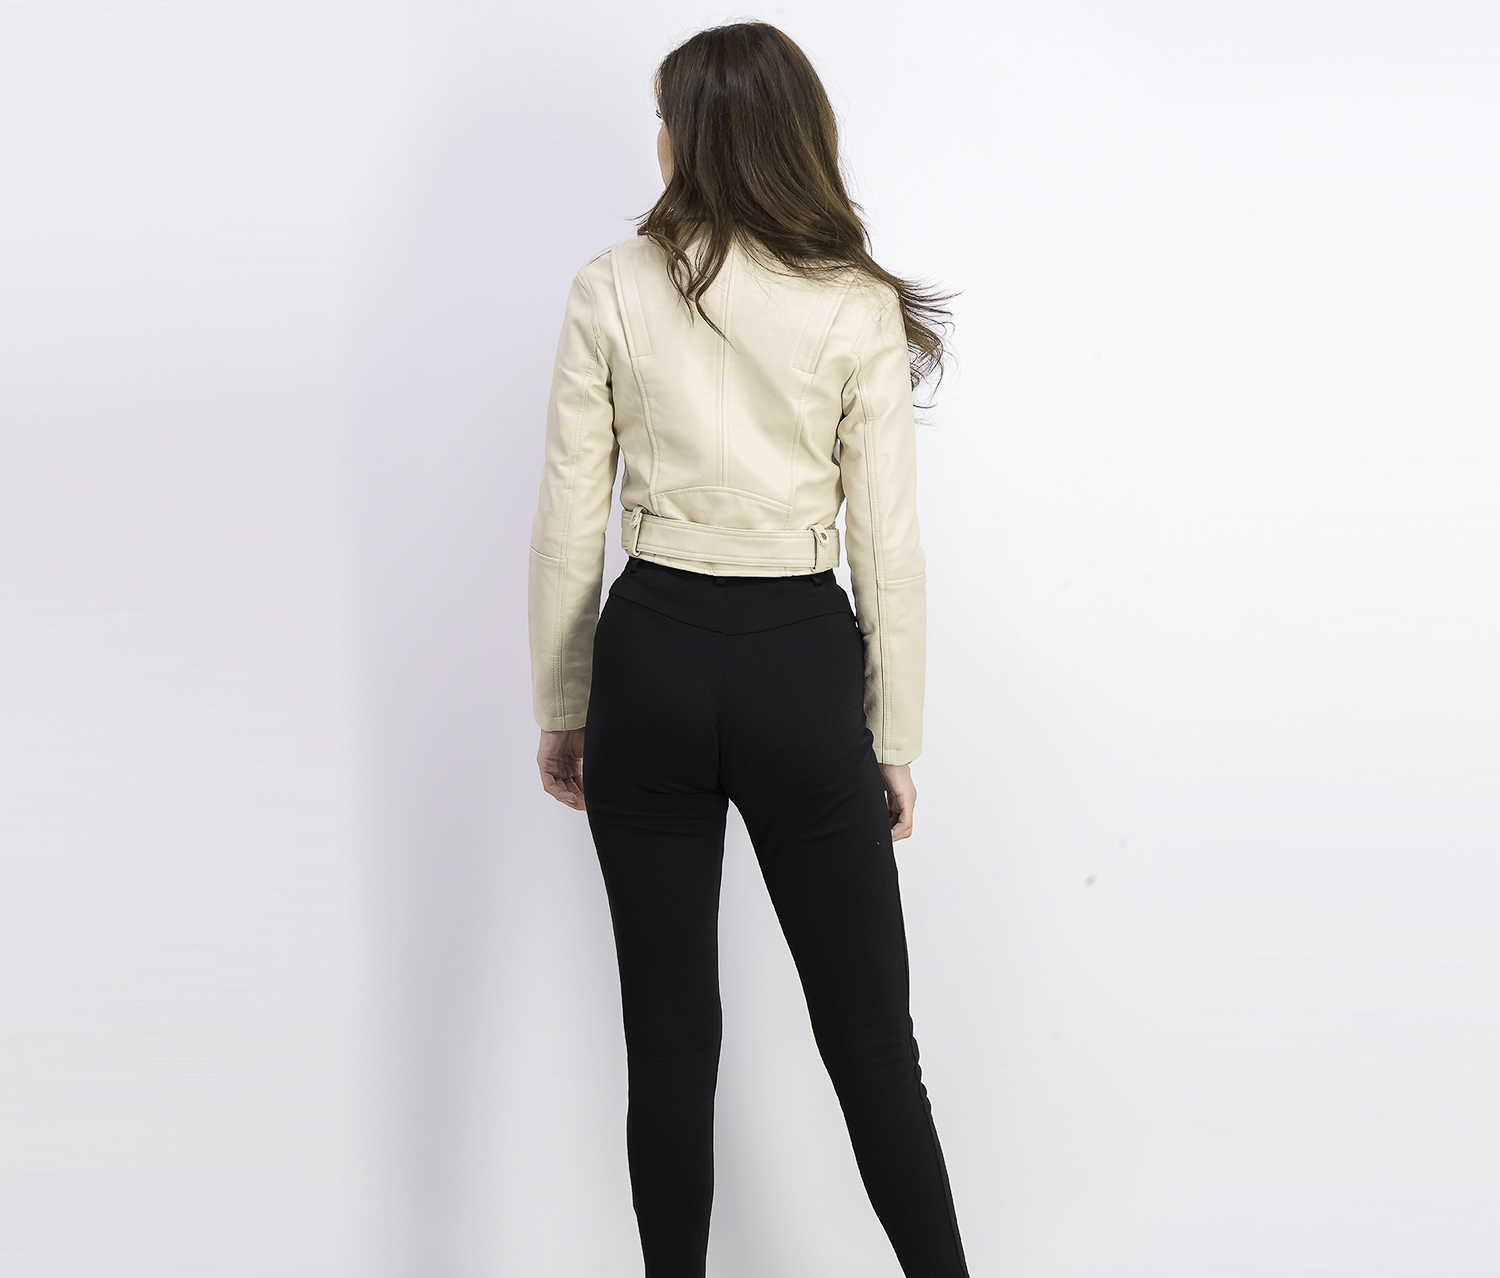 Bershka Womens Faux Leather Jacket Cream Brands For Less